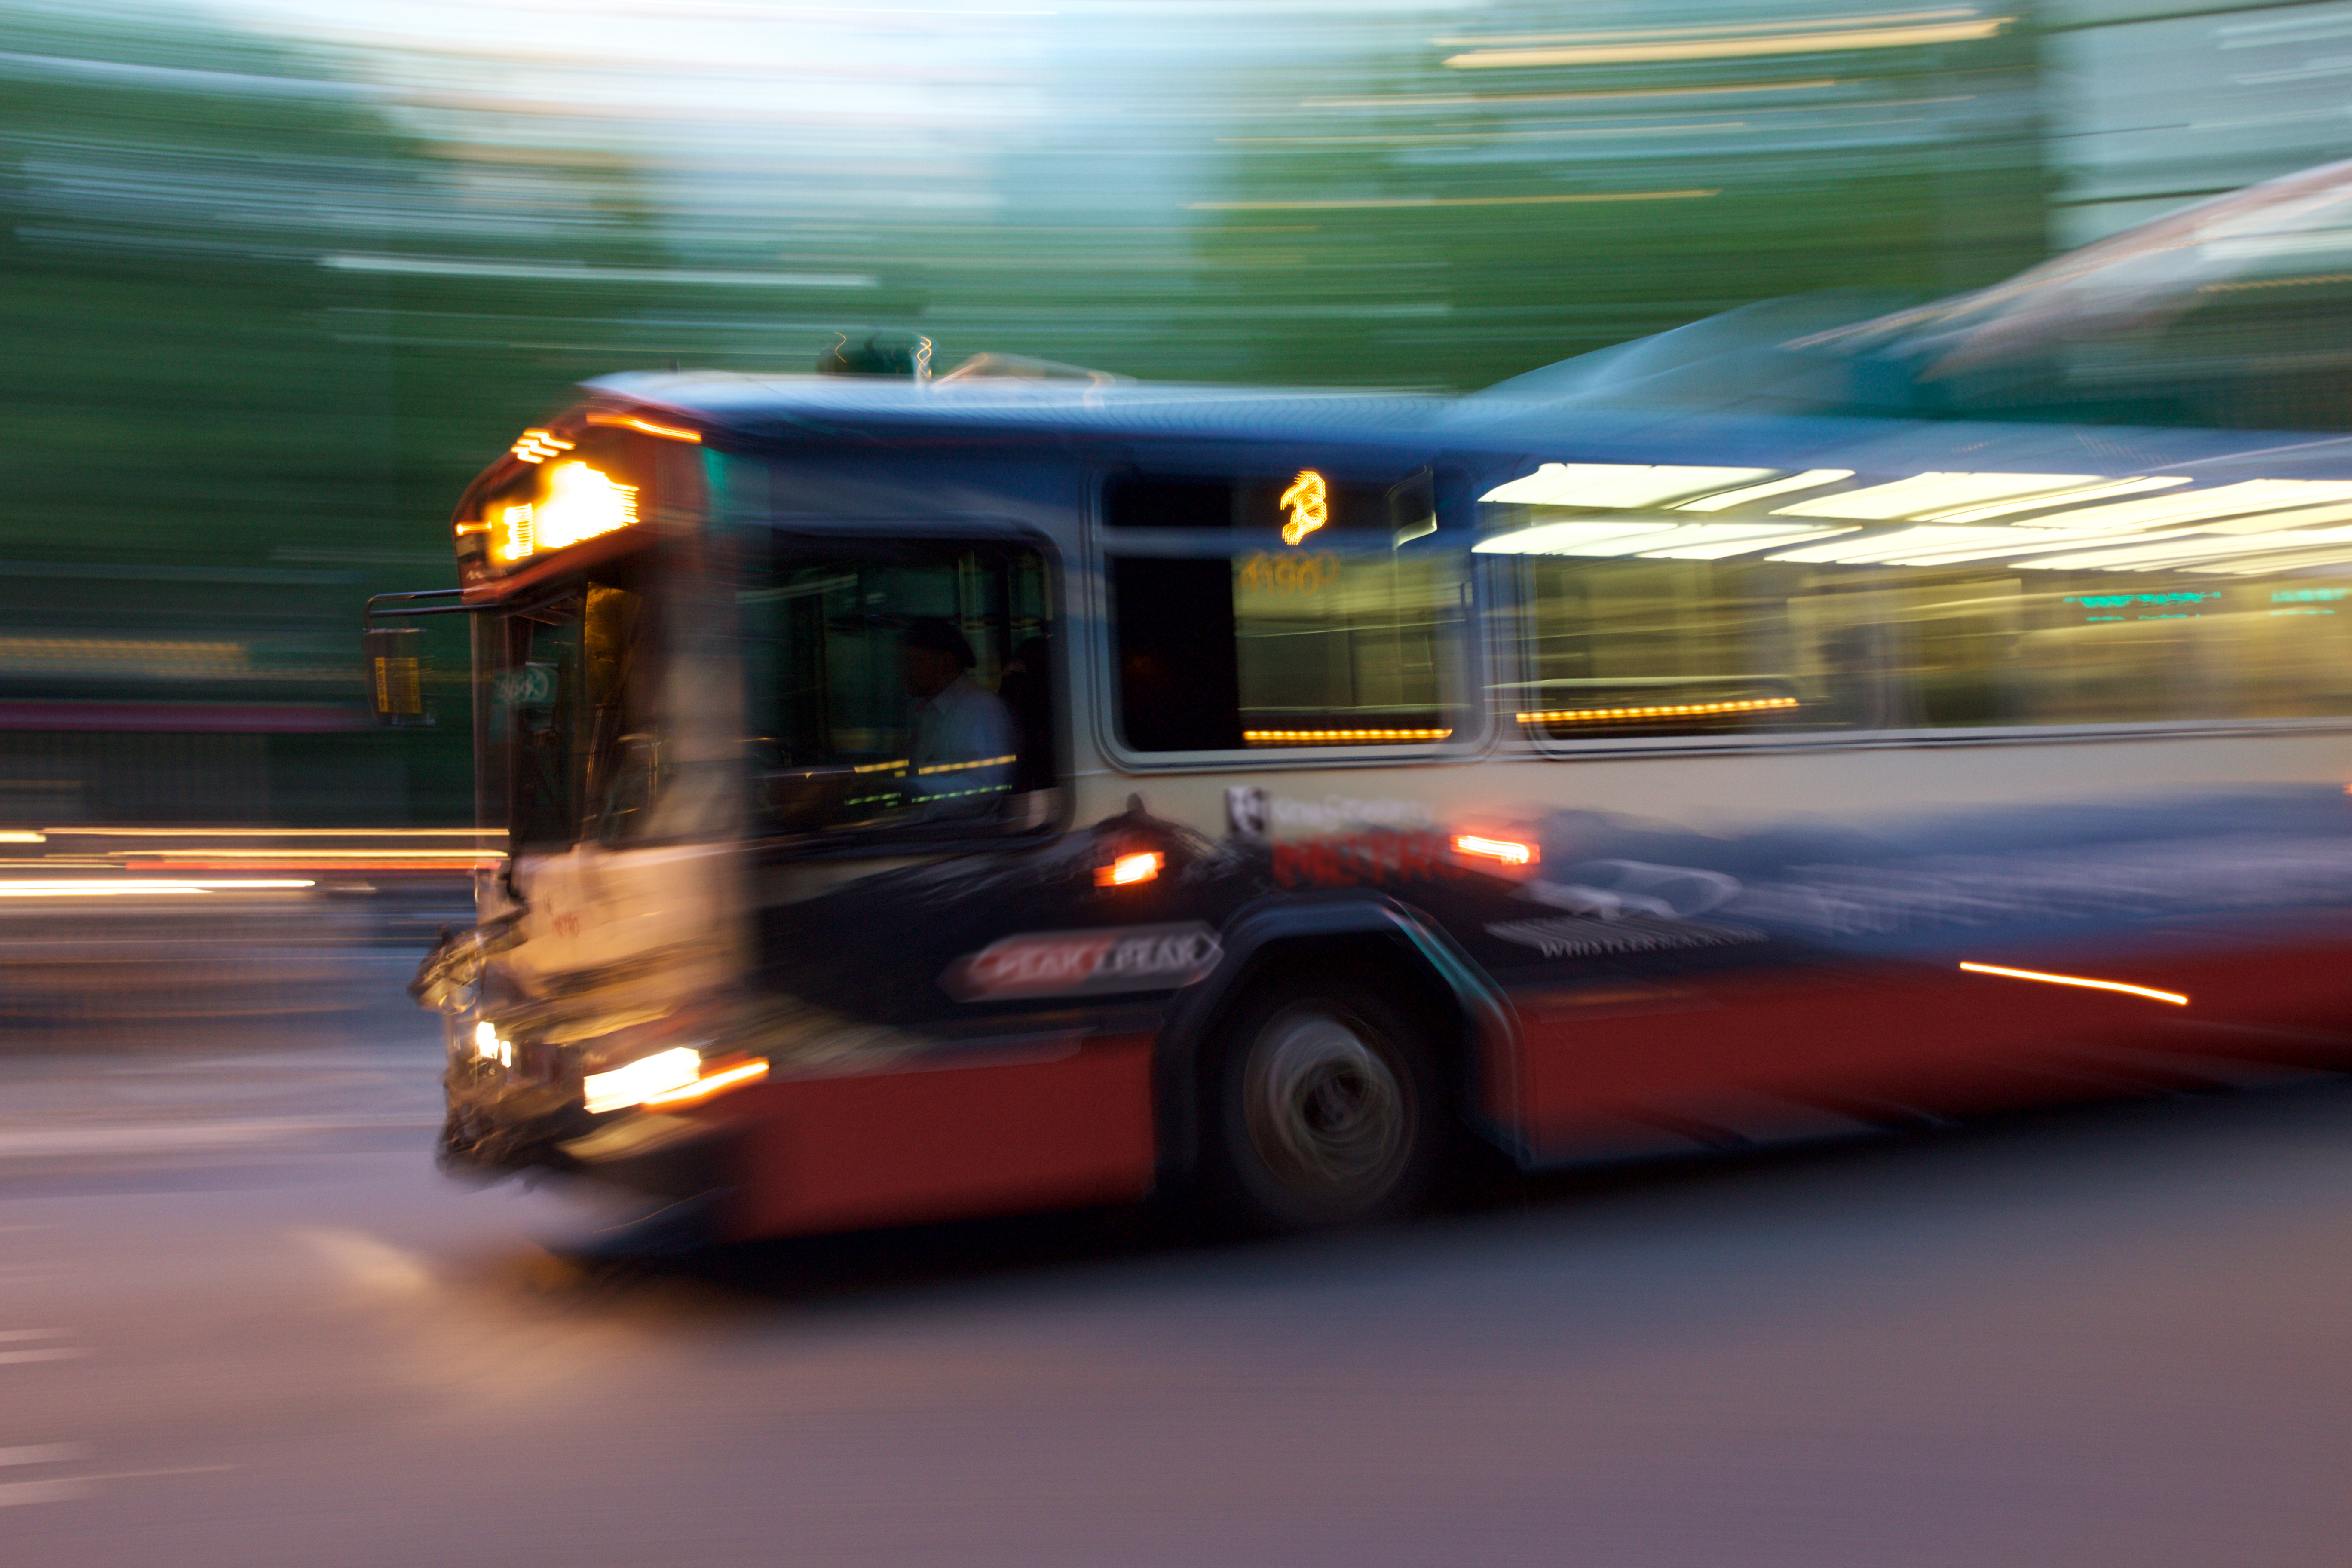 Blurry photo of a Number 3 bus at night